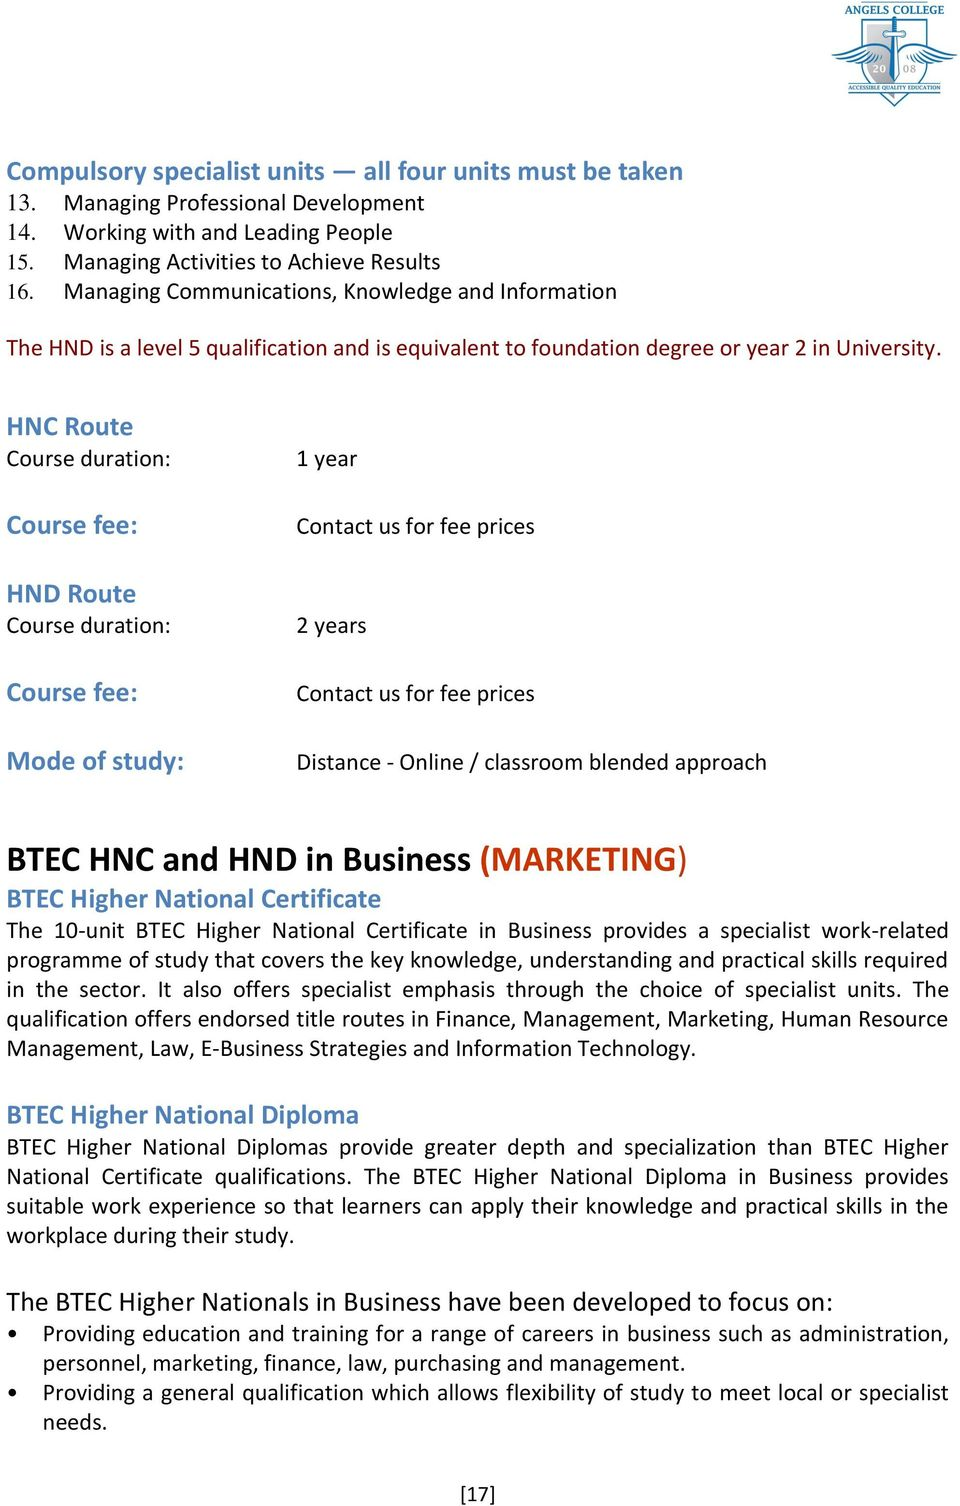 HNC Route Course duration: HND Route Course duration: Mode of study: 1 year 2 years Distance - Online / classroom blended approach BTEC HNC and HND in Business (MARKETING) BTEC Higher National